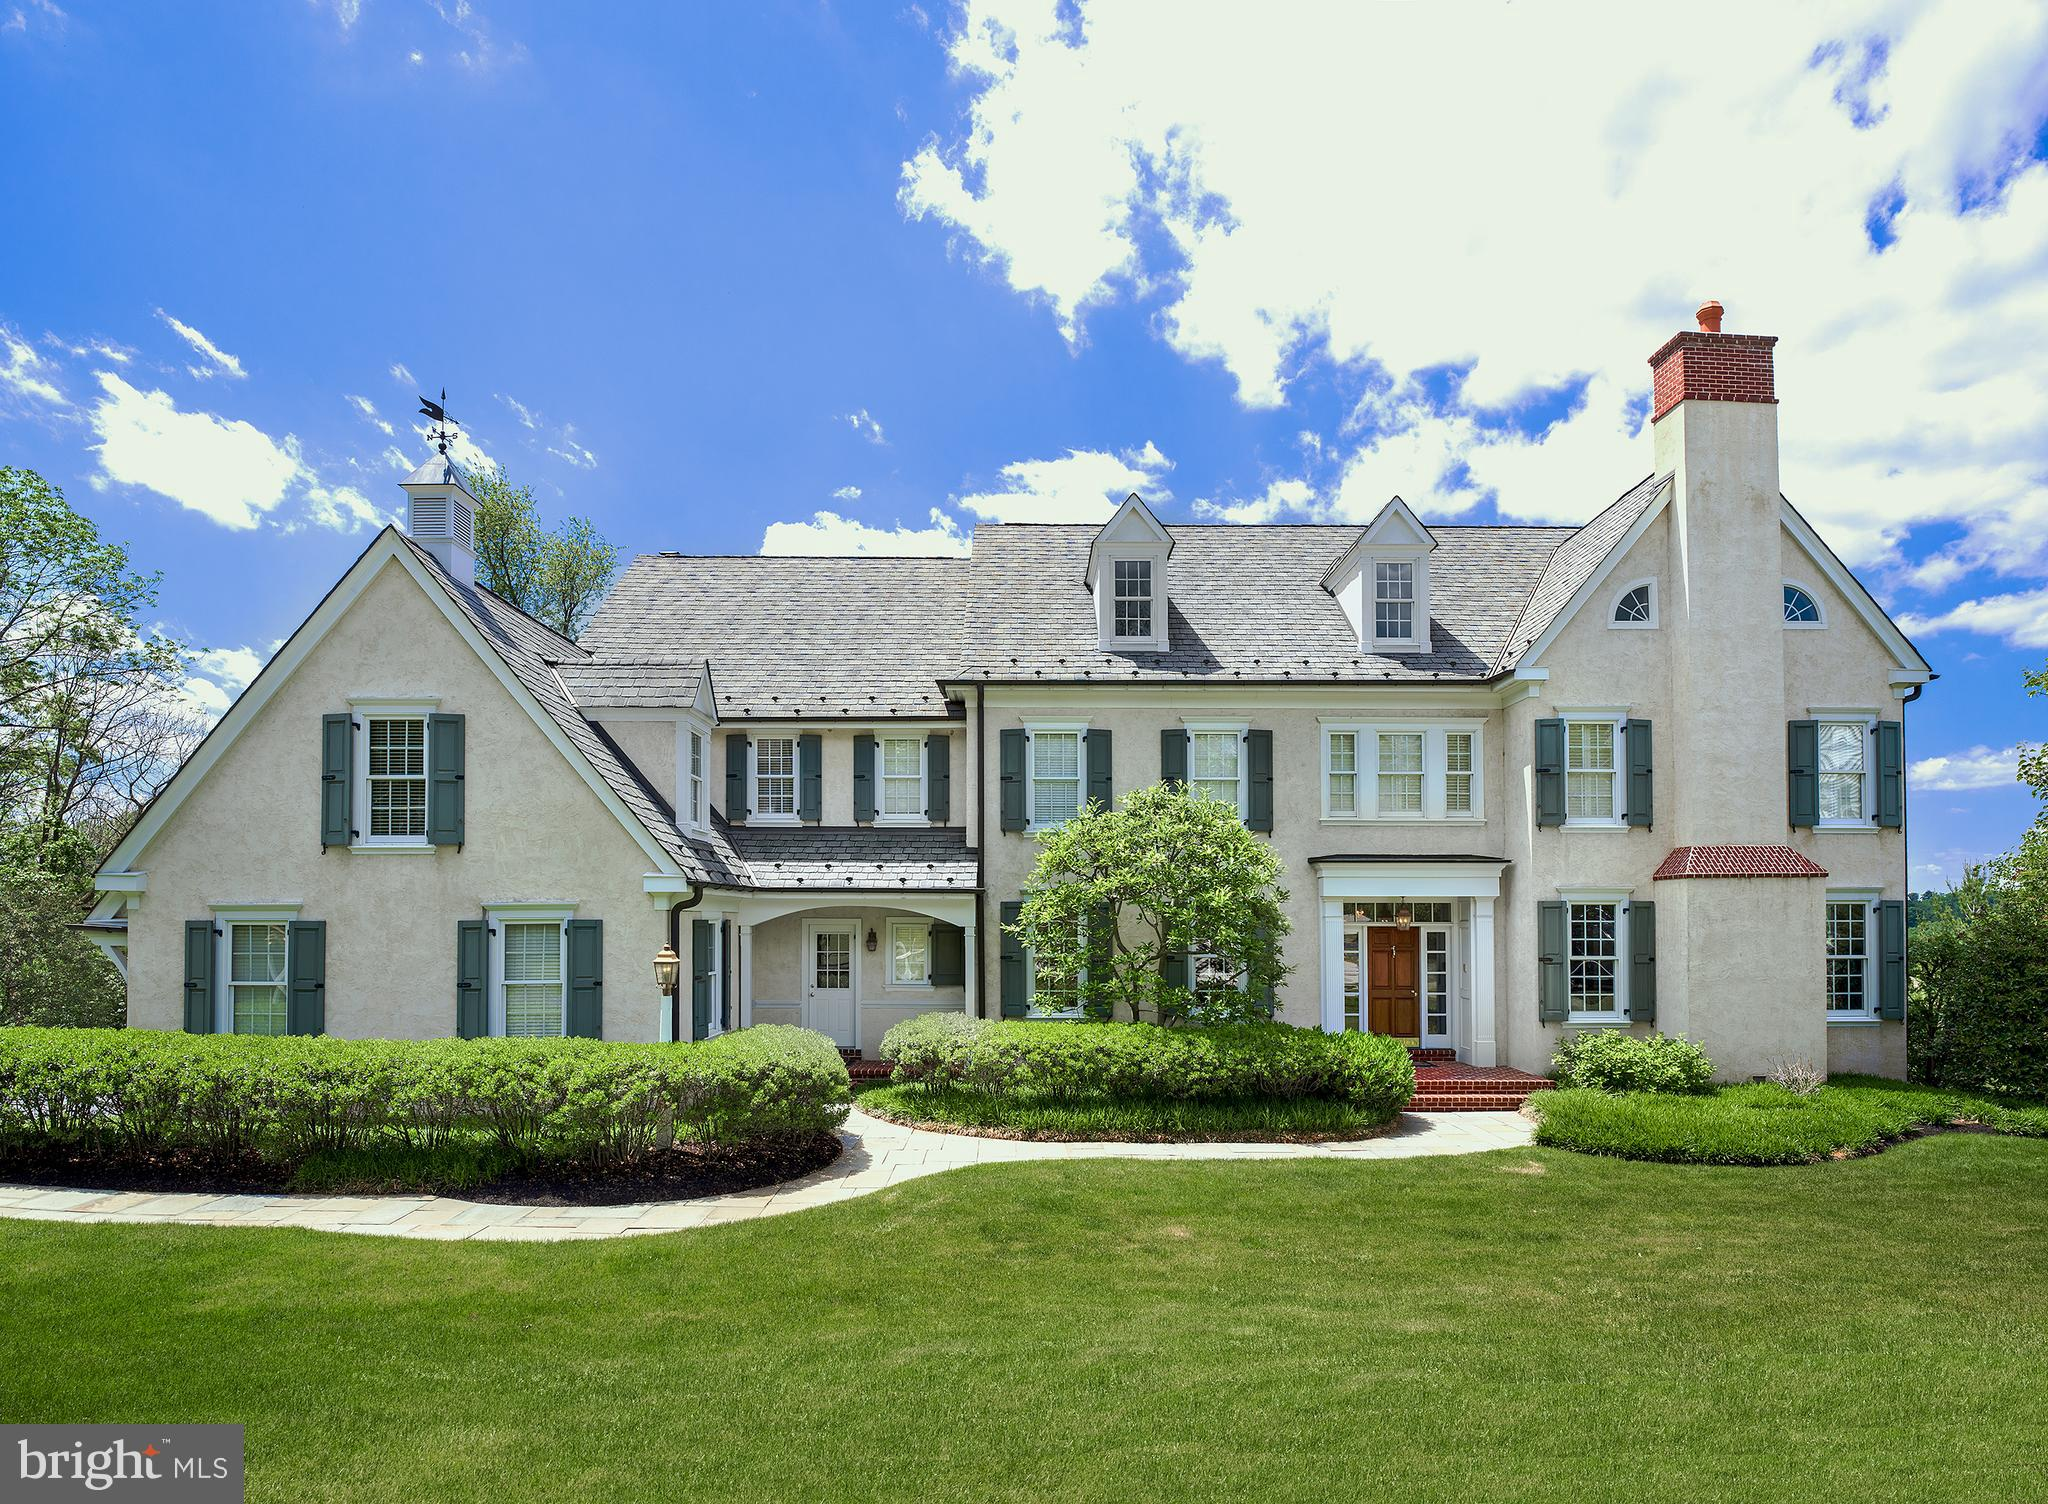 Live at the end of a beautiful, private cul-de-sac with long vistas of 100-acre East Goshen Park & Applebrook Golf Course, neither of which can ever be built on, making it feel like you are nestled on 200 acres! This elegant 2-story colonial in the most amazing location of the Radnor Hunt area affords you & your family the seclusion, vistas, and transitional-style living quarters you desire, in a premier location convenient to all amenities. Picturesque grounds surround the home and offer generous lawn for playtime & activities. A lovely open front porch and expansive rear patio provide a peaceful setting for outdoor pleasure and a backdrop for summertime entertaining.  The house has been finely updated and boasts a gracious layout that works well for a small or large family living. It is easily expandable with an optional 5th bedroom, now an upstairs storage area over the garage but accessed from the 2nd floor, plus an extremely spacious basement that has 9' ceilings & a finished bannister at the landing. The entire main floor has been completely and tastefully redone, enriched by gorgeous finishes & rich cherry wood floors, plus there is so much else to appreciate like a top-of-the-line kitchen, premium appliances & fixtures, custom closets & pantry, new AC and heating, a newer water heater and more.  An airy light-filled entry foyer welcomes you inside, presenting exquisite millwork, moldings & architectural details, with a floor-through view of French doors to the rear oasis. Flanking the foyer is a gracious living room with fireplace & gracious formal dining room for hosting in style. The top-of-the-line kitchen is a dream for the cook featuring stainless steel Thermador & Sub-Zero appliances, a built-in Miele coffeemaker, Calcutta Gold Marble countertops (also in the butlers pantry), dual sinks, instant hot & Insinkerator. Enjoy coffee & snacks in the open vaulted breakfast room enveloped by windows, or step out glass doors to the flagstone patio with a pergol